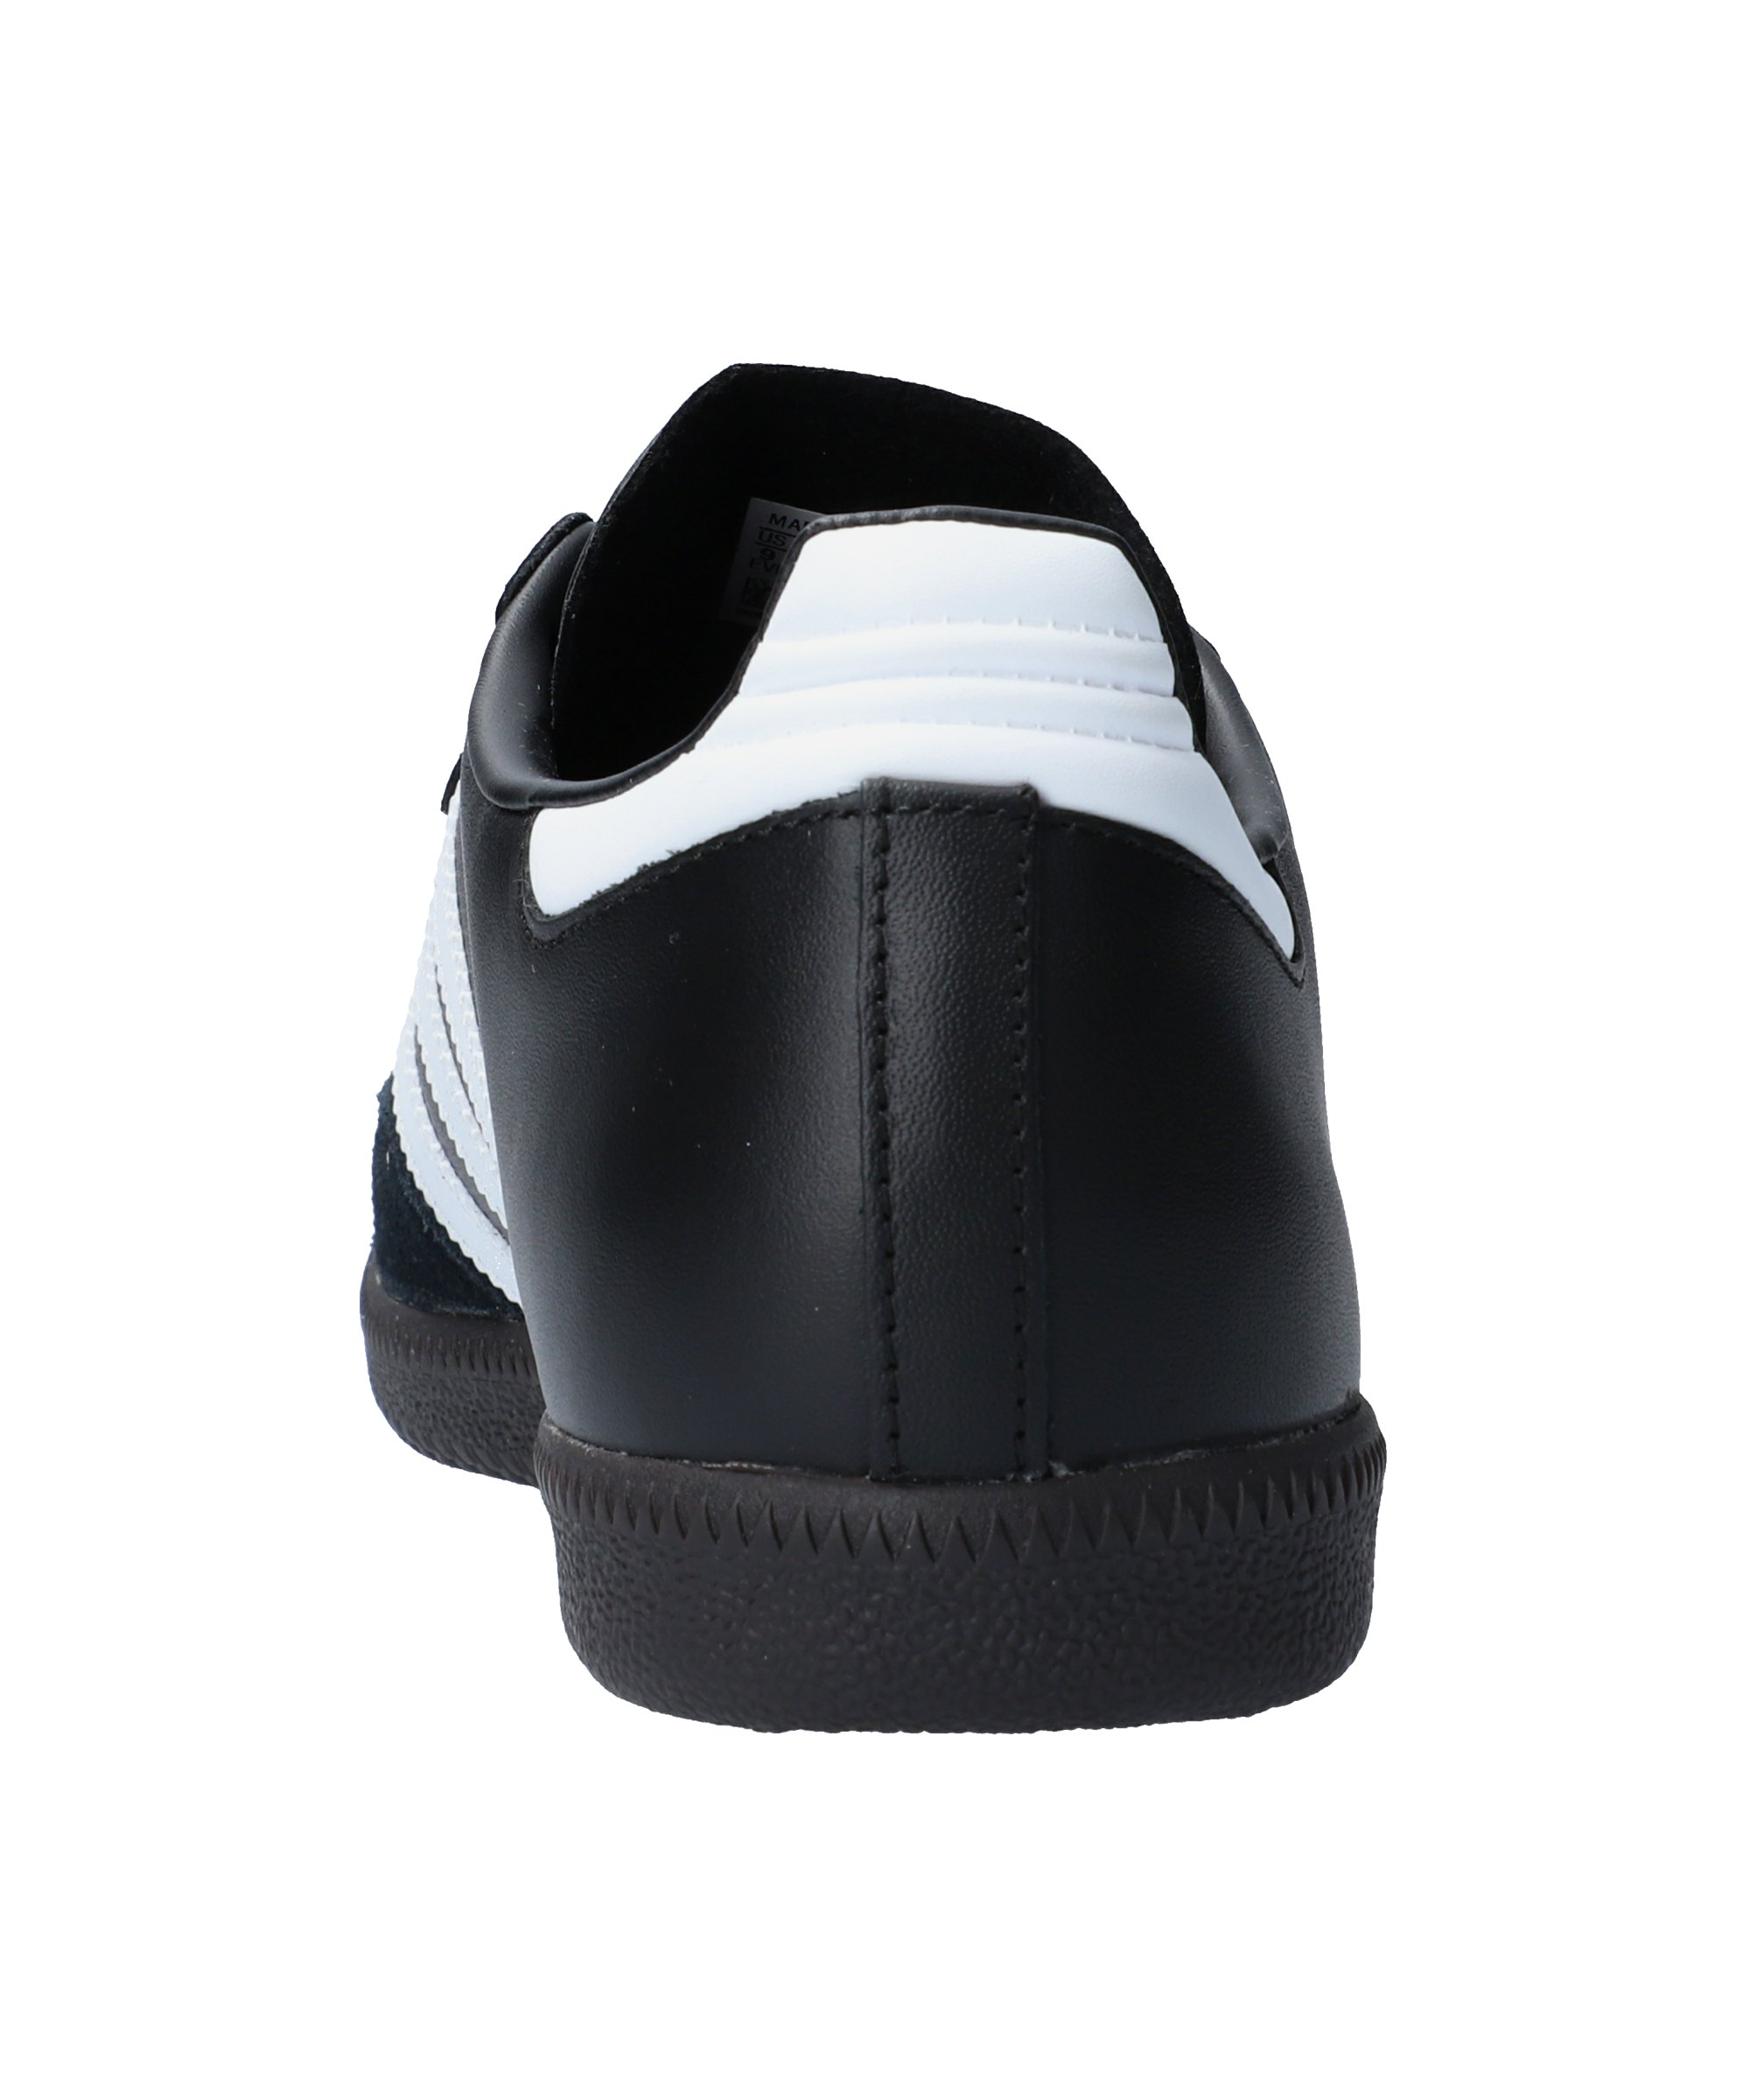 adidas samba hallenschuh leder schwarz weiss. Black Bedroom Furniture Sets. Home Design Ideas